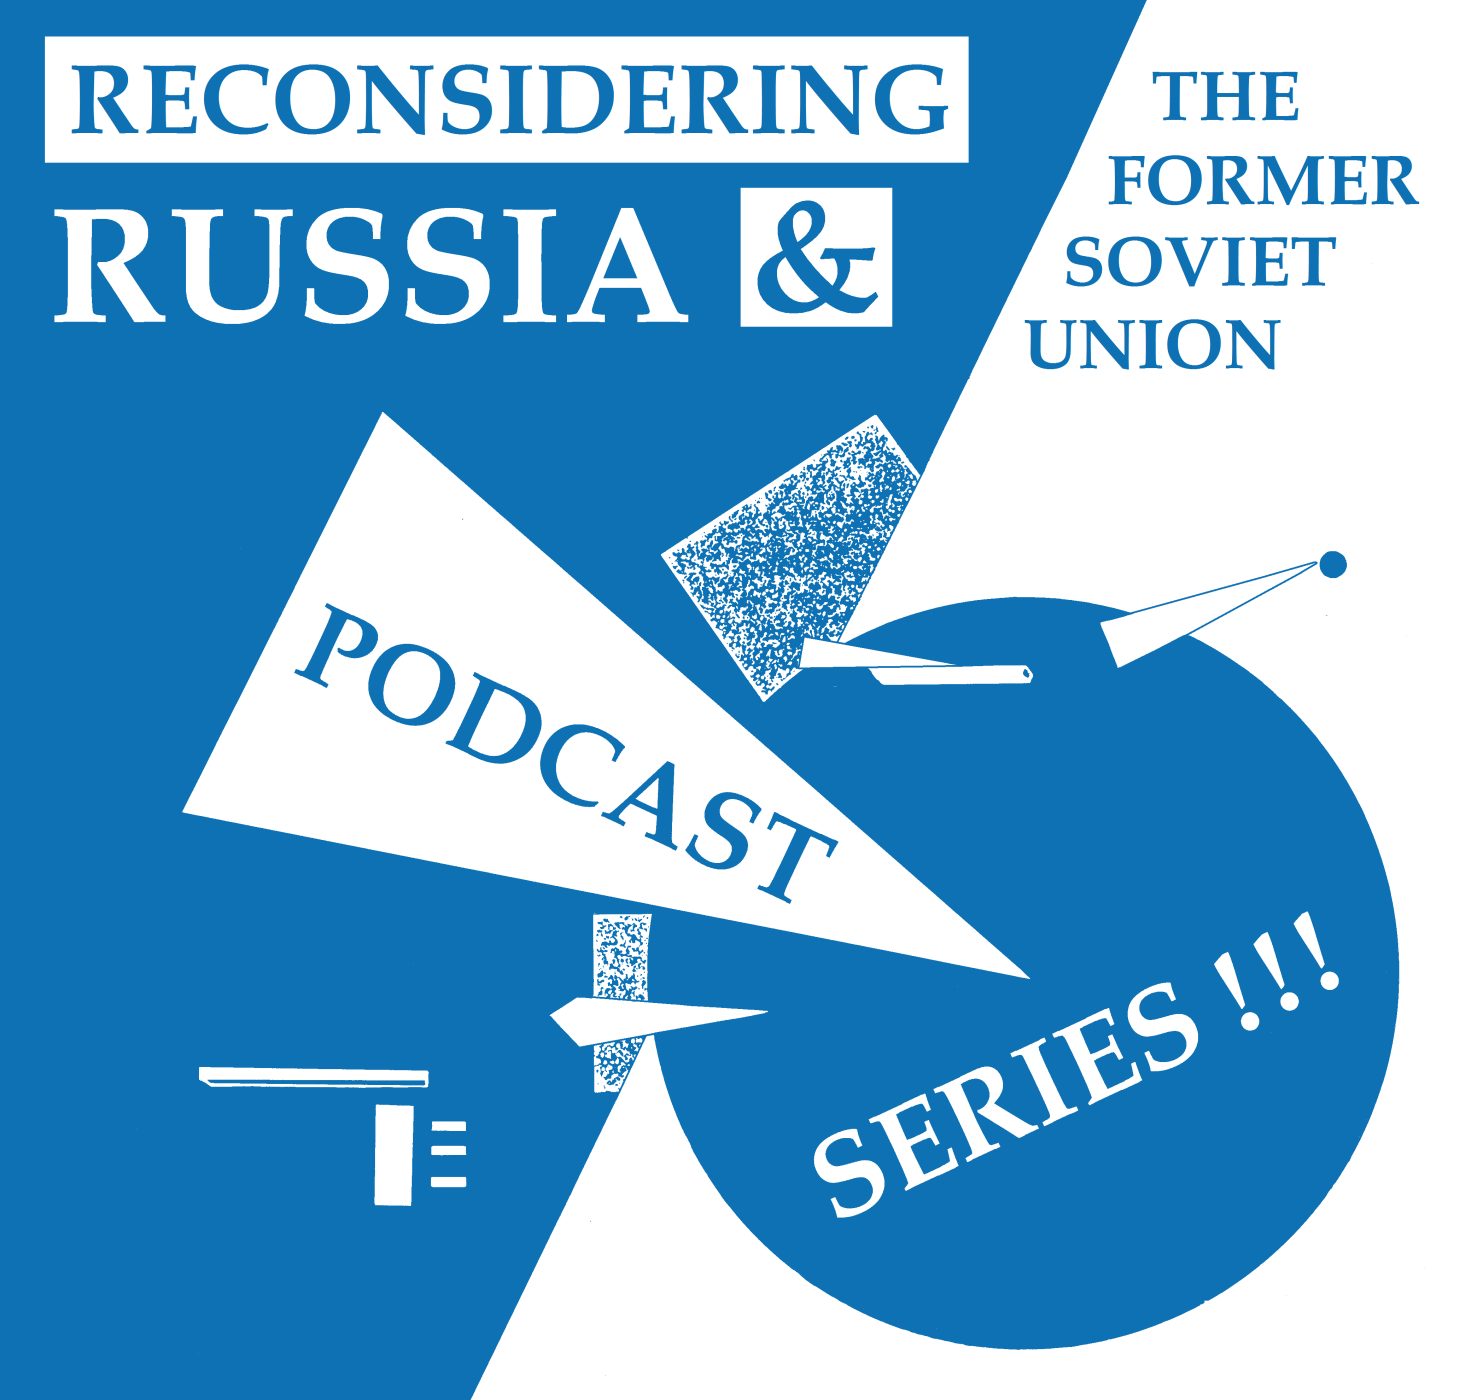 Reconsidering Russia